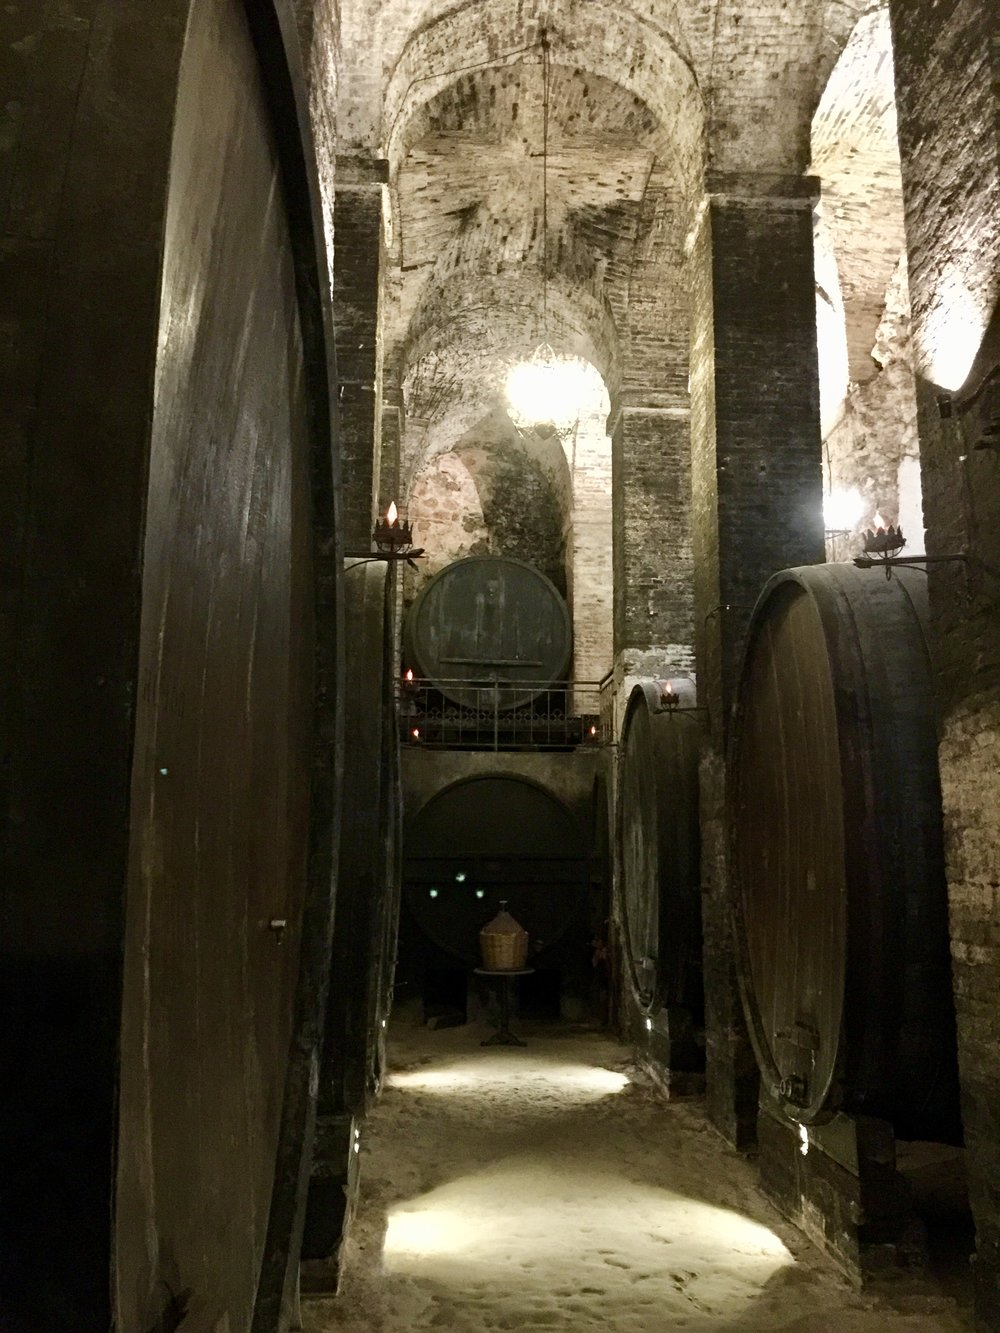 Underground cathedral cellar at De'Ricci winery in Montepulciano.